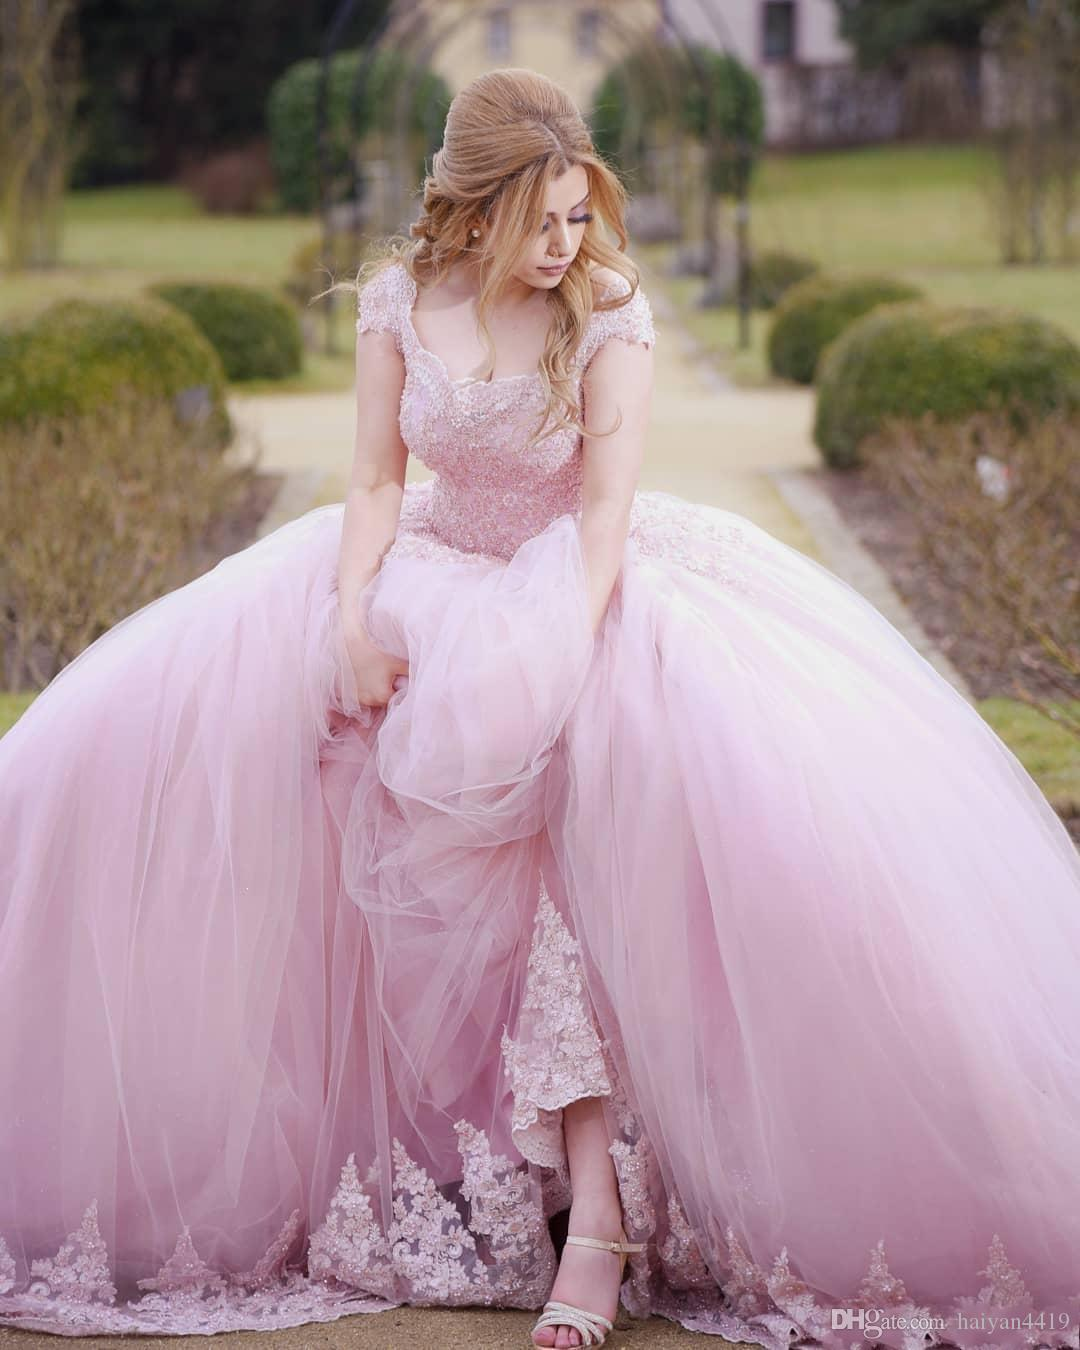 2018 Pink Quinceanera Ball Gown Dresses Scoop Neck Cap Sleeves Lace Beads Pearl Corset Back Sweep Train Puffy Tulle Party Prom Evening Gowns